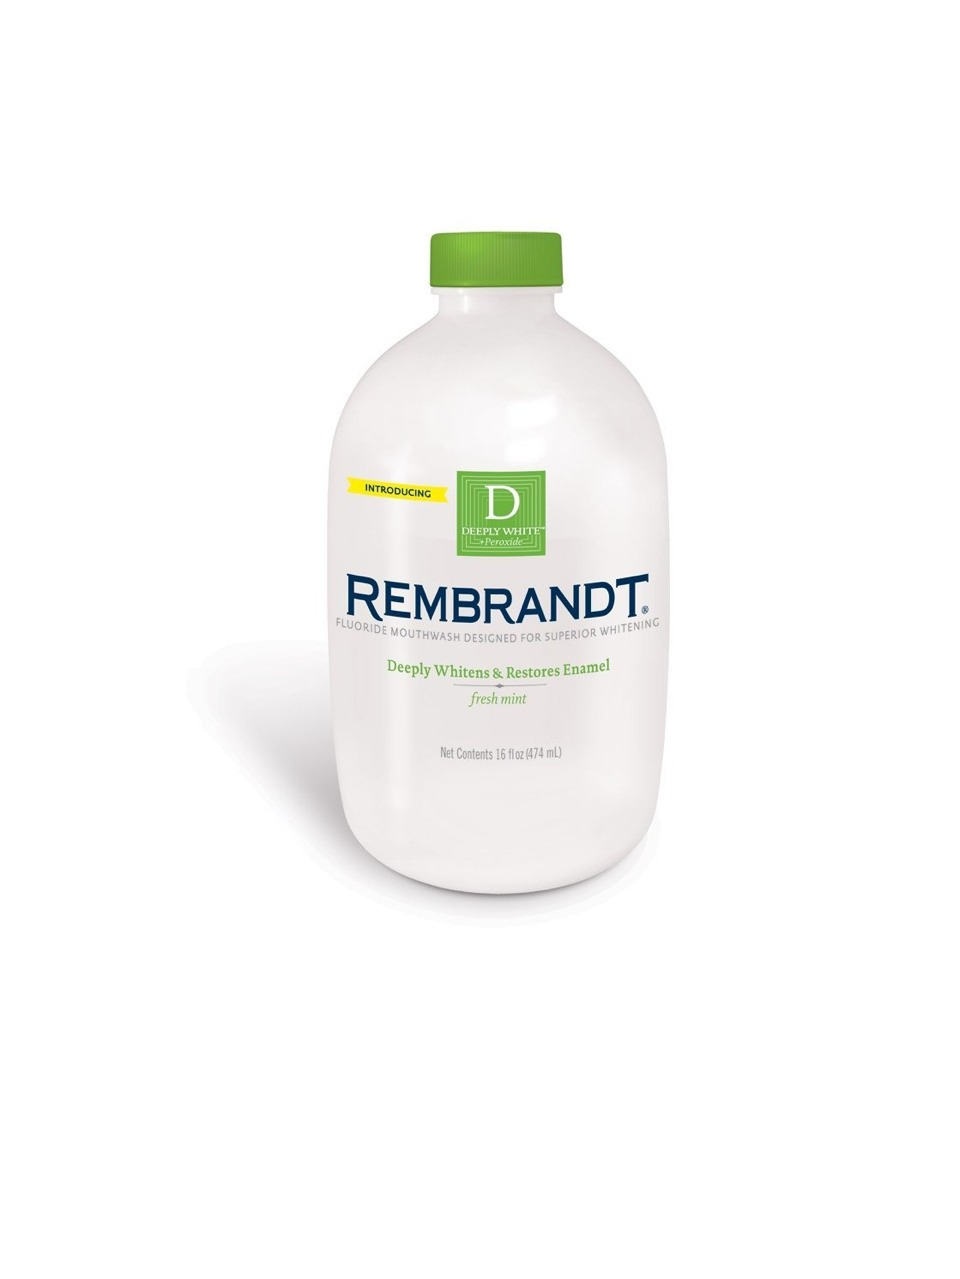 I keep a little travel bottle of this amazing mouth wash in my purse, a full bottle at work in my office and one in my bathroom at home! It's cheaper than chewing gum after meals and it gives a good swish with peroxide and mint for a refreshing clean feeling! I am always scared of having bad breath!